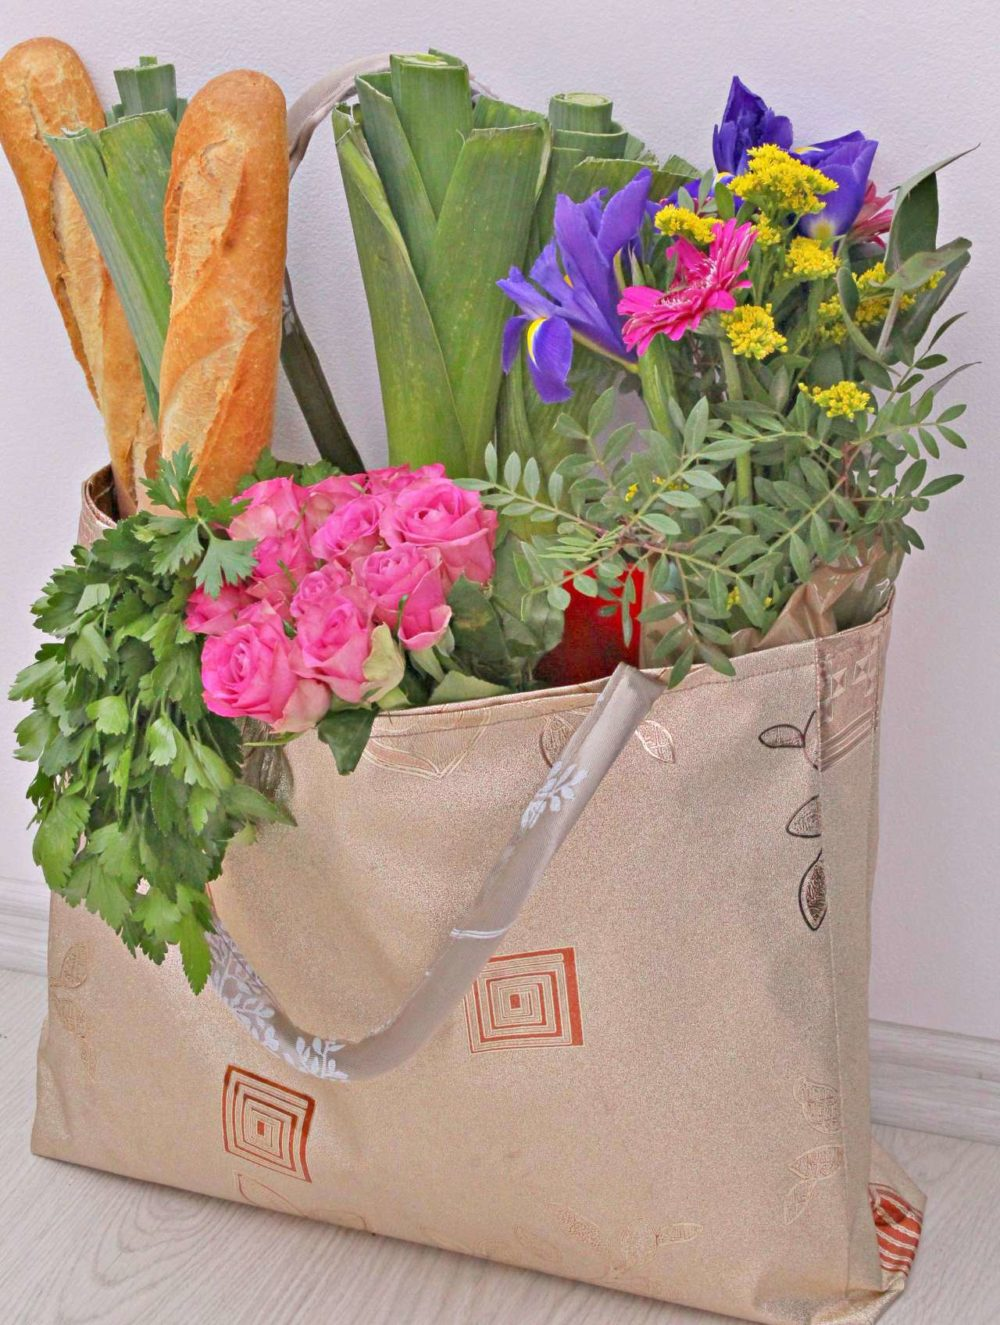 Easy grocery bag sewing pattern